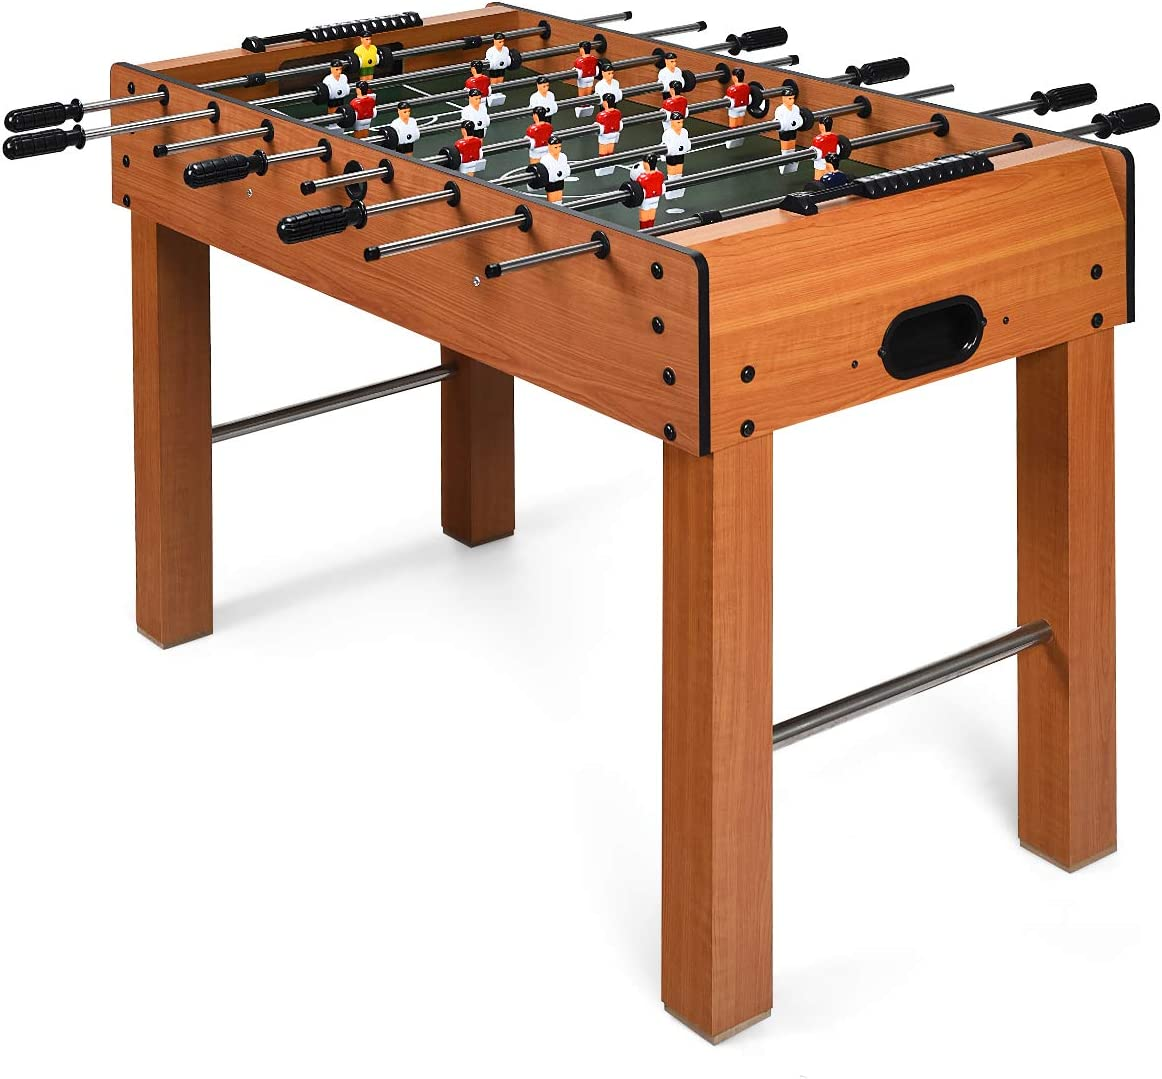 Goplus 48 Foosball Table, Easy-Assemble Soccer Game Table w 2 Balls, Competition Sized Foosball Games for Home, Game Room, Arcade